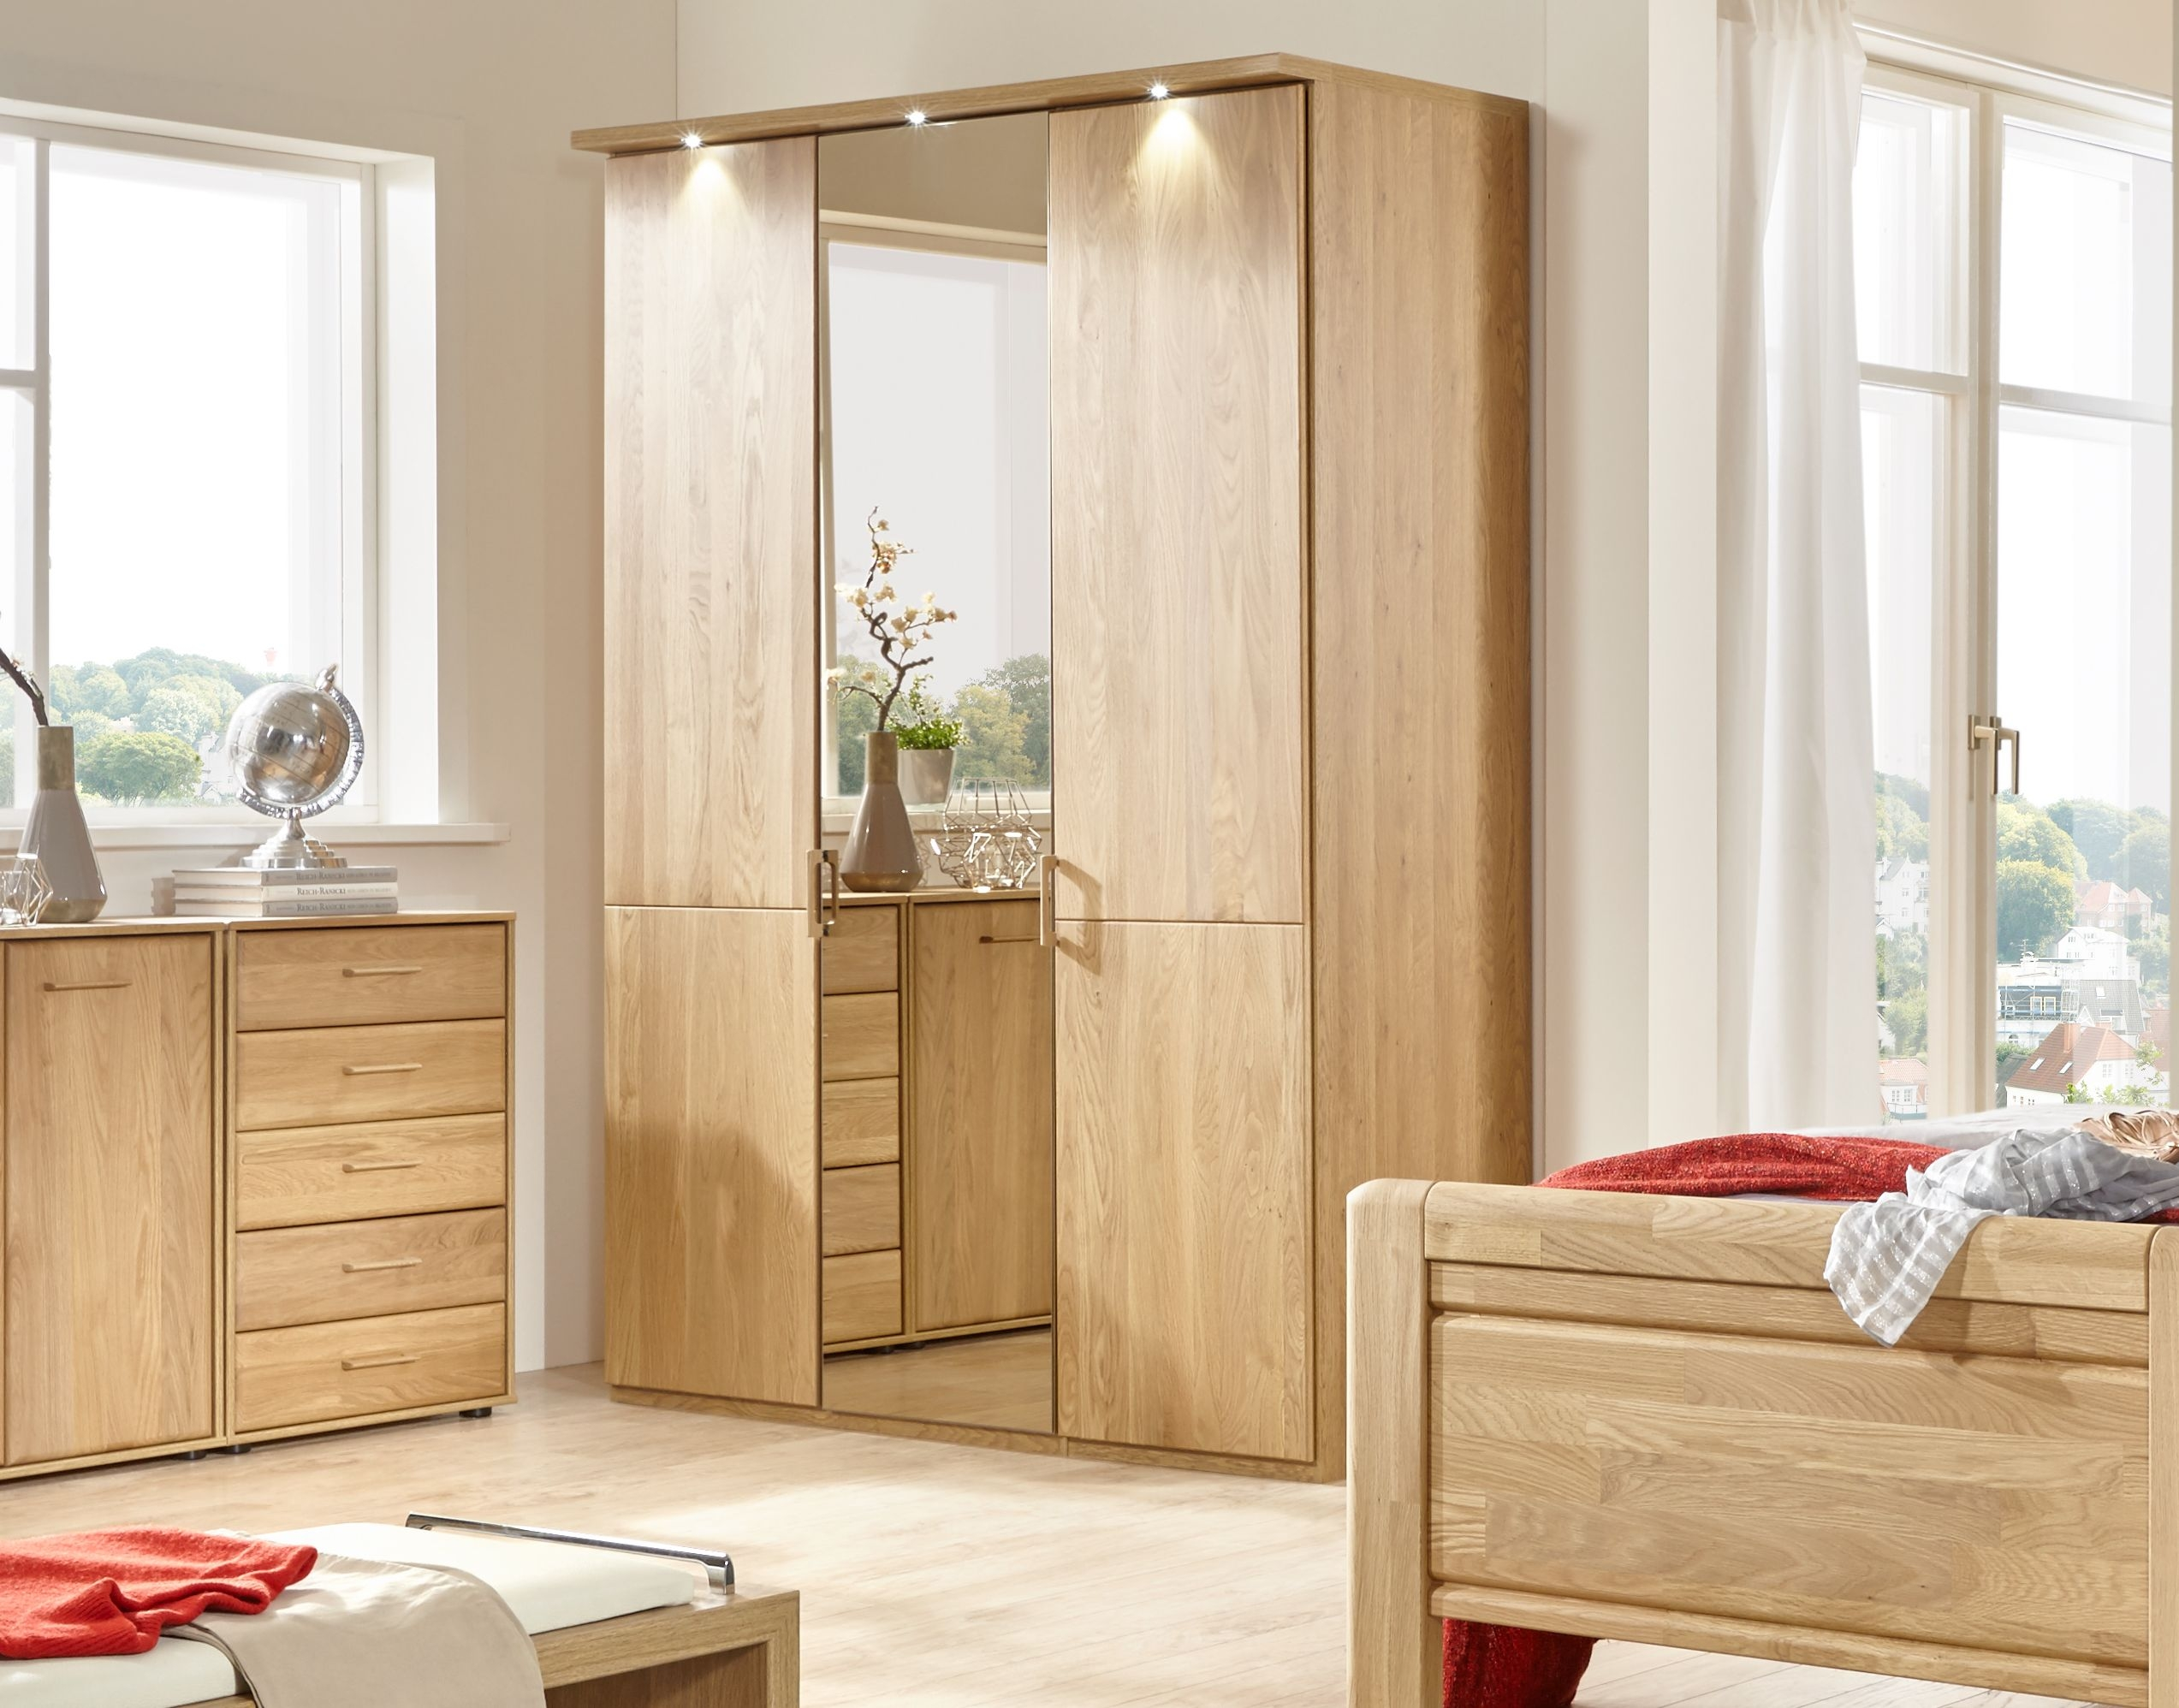 Wiemann Lido 6 Door 4 Mirror Wardrobe in Oak - W 300cm